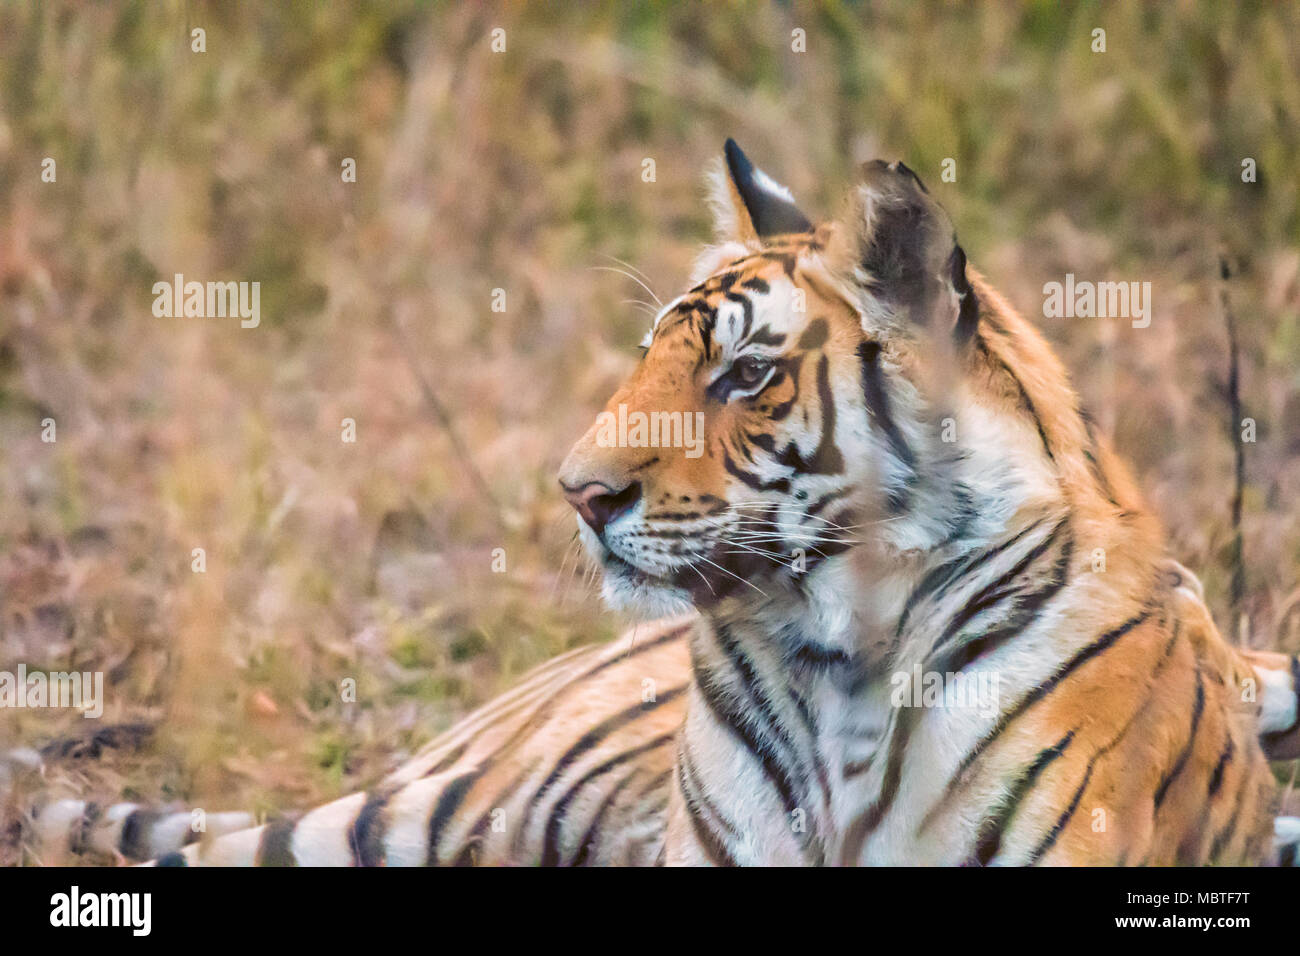 Side view close-up portrait of a two year old male Bengal Tiger, Panthera tigris tigris, Bandhavgarh Tiger Reserve, Madhya Pradesh, India - Stock Image